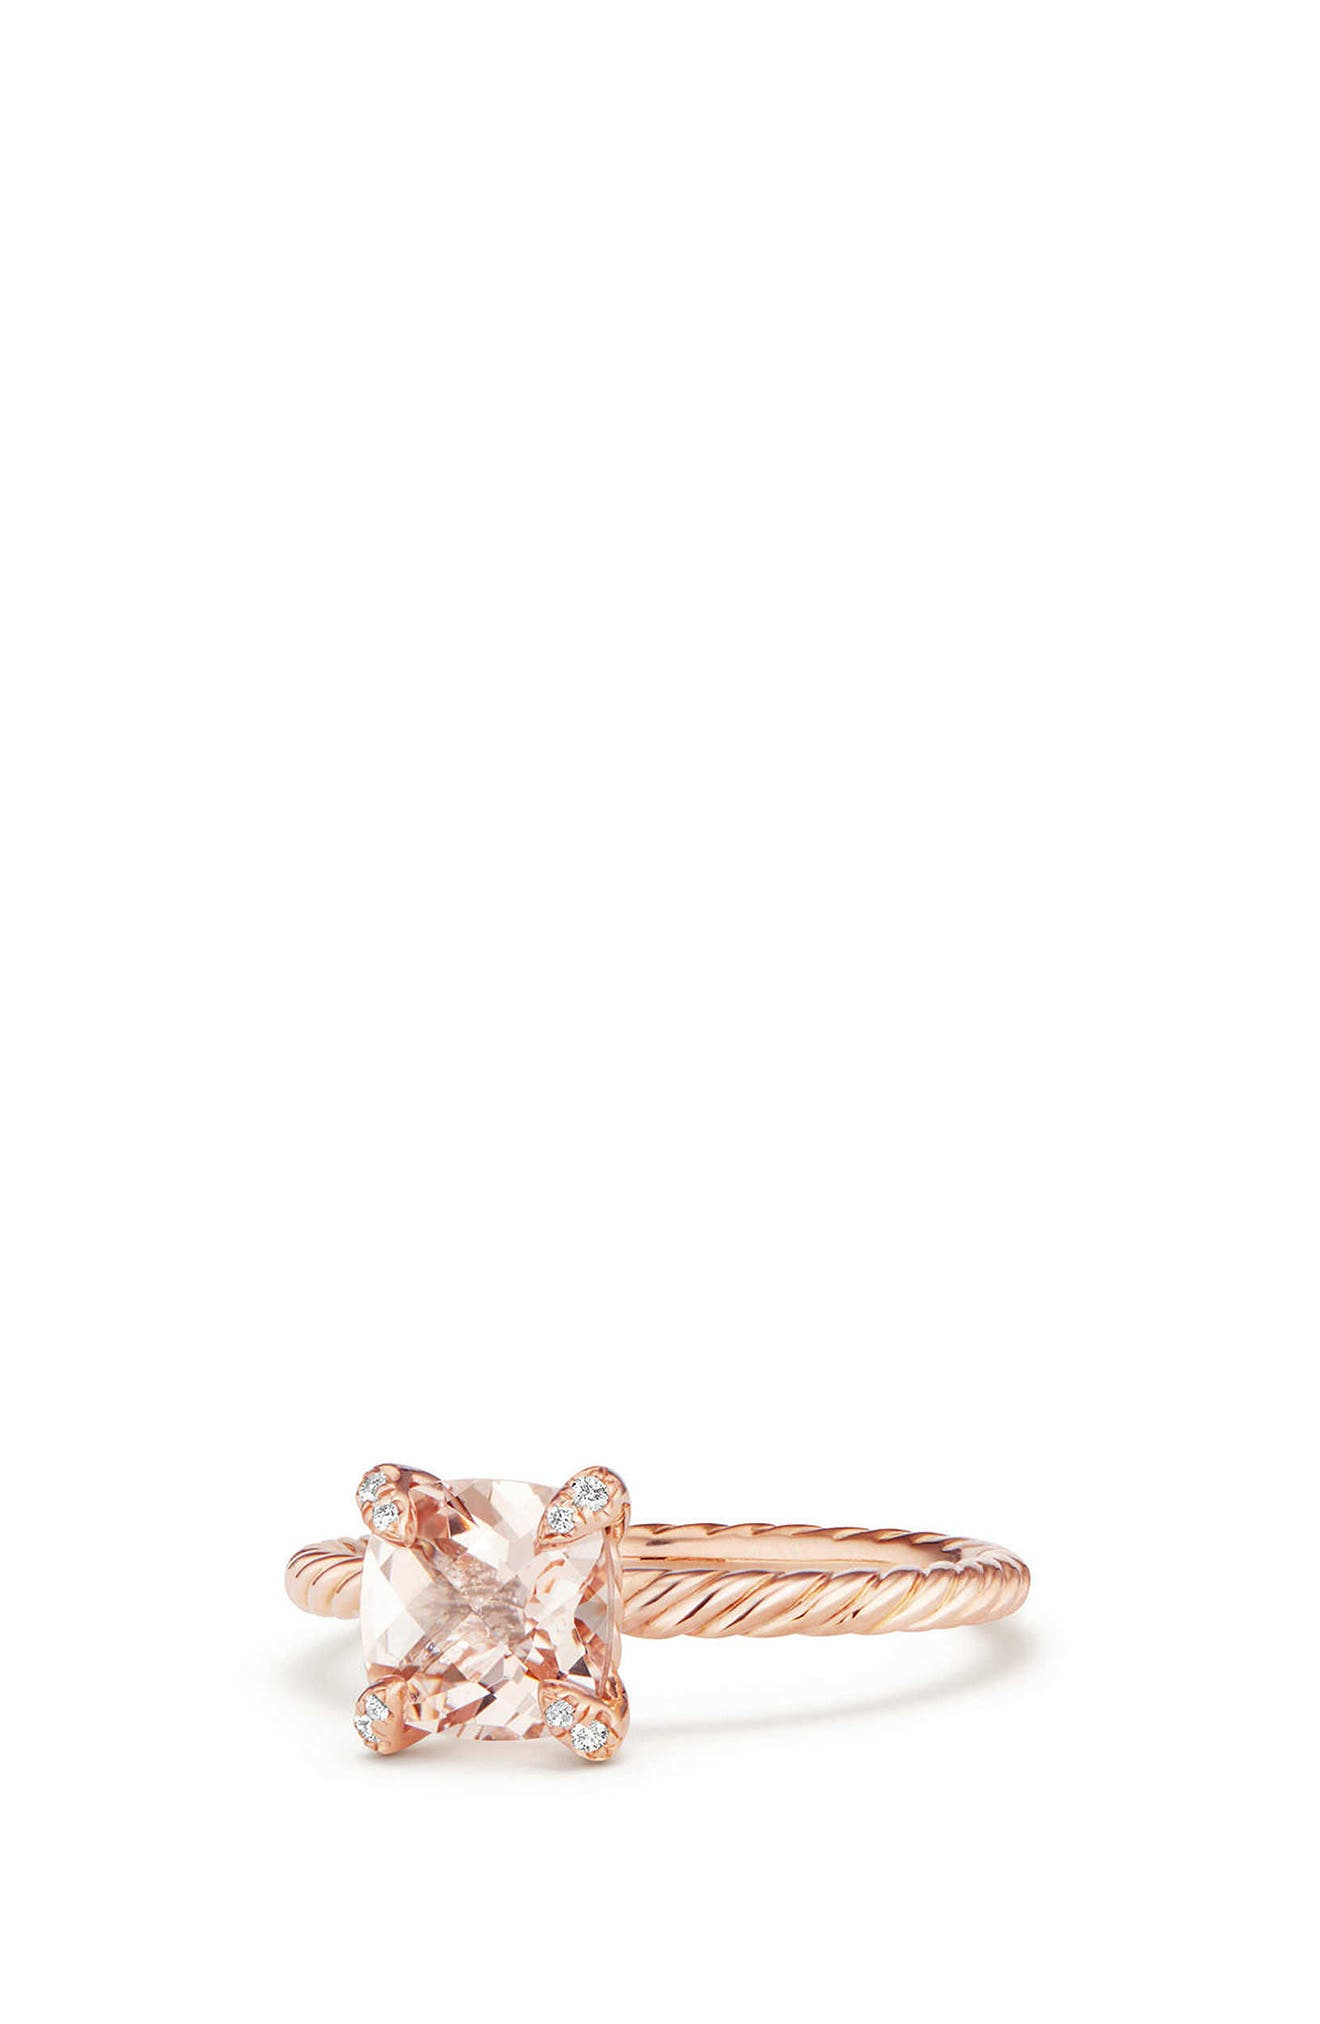 Chatelaine Ring with Morganite and Diamonds in 18K Rose Gold,                             Alternate thumbnail 3, color,                             ROSE GOLD/ DIAMOND/ MORGANITE